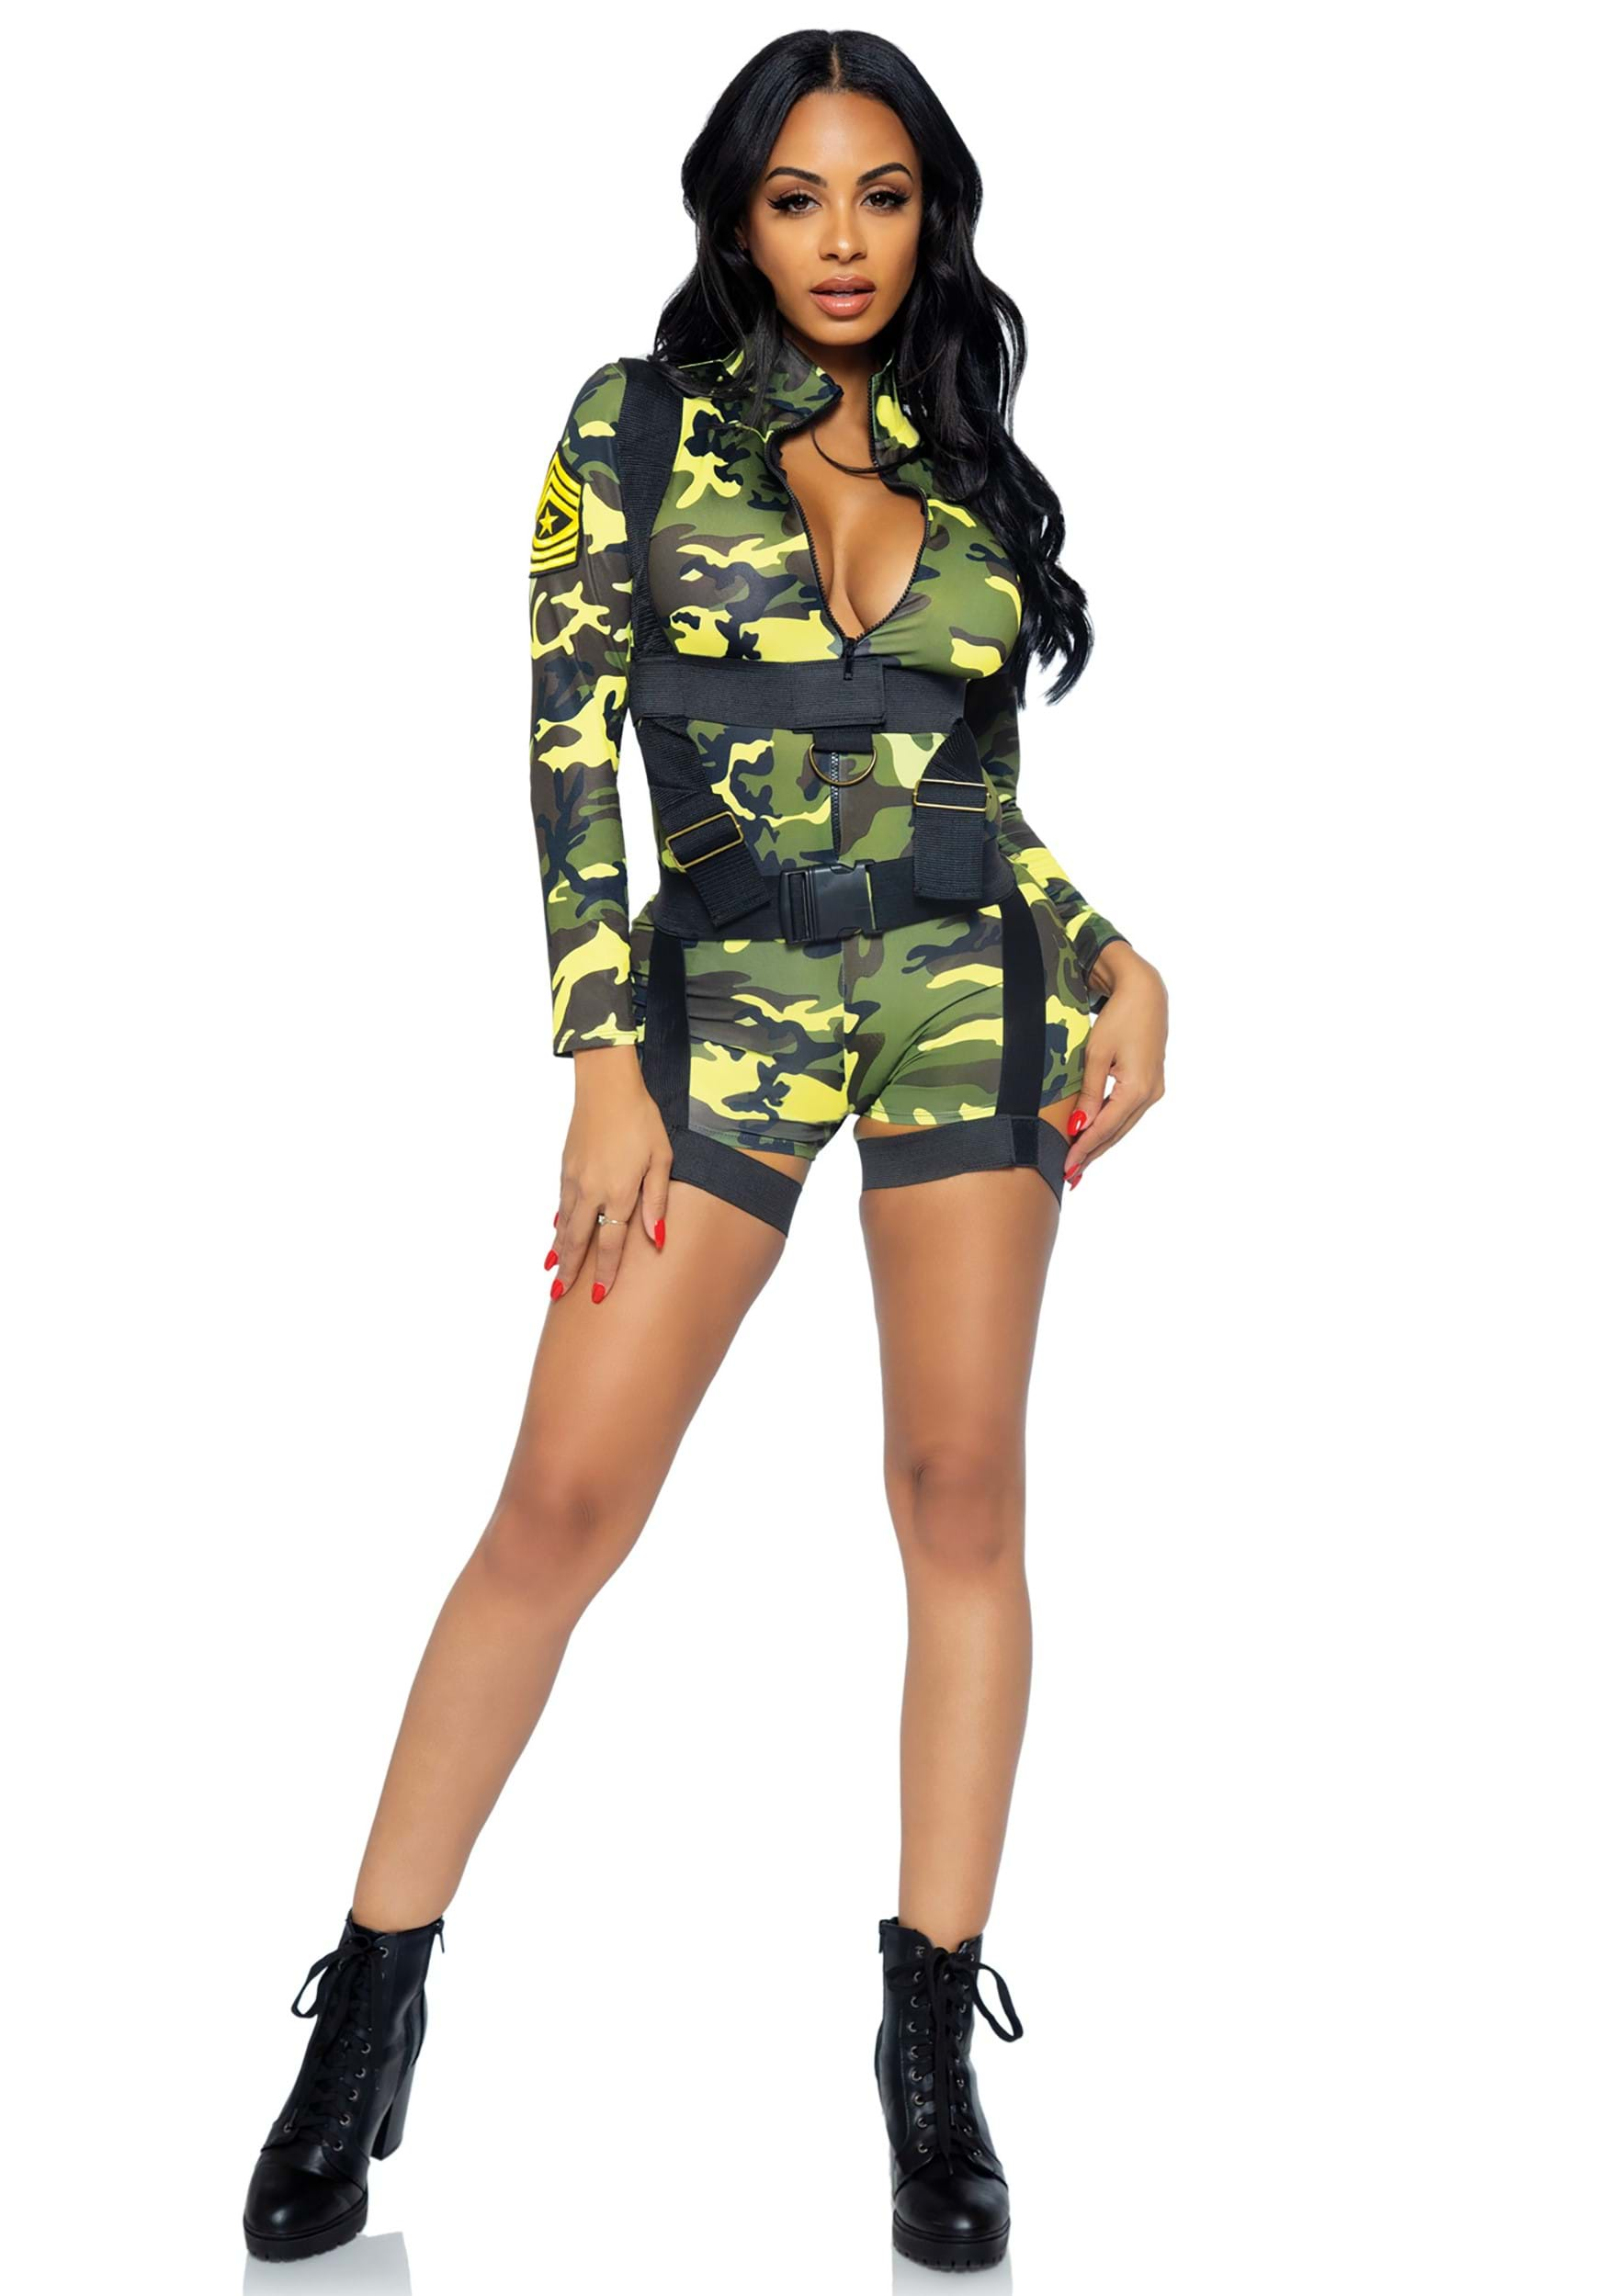 Goin Commando Adult Costume  sc 1 st  Halloween Costumes & Womenu0027s Goinu0027 Commando Army Costume